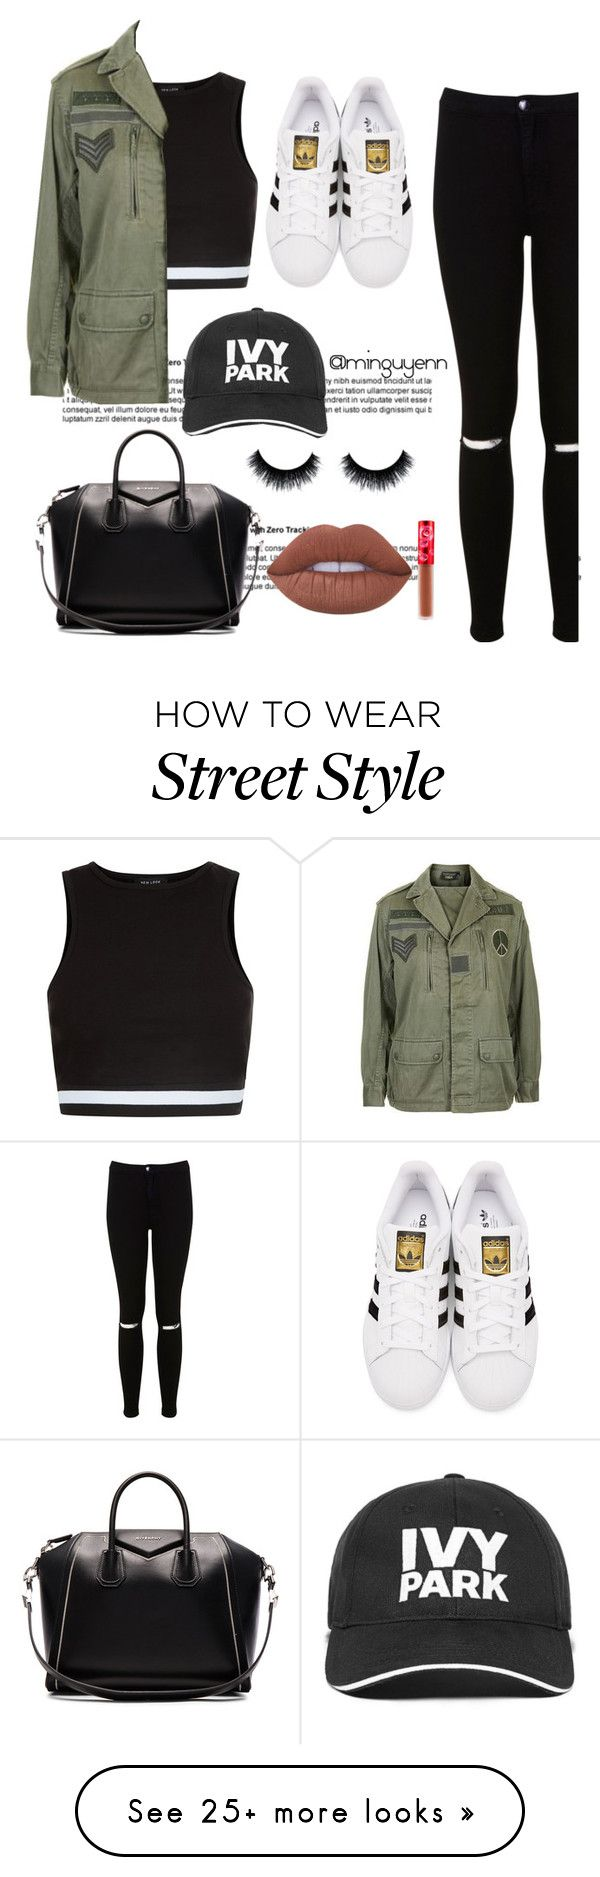 """Street style "" by minguyenn on Polyvore featuring New Look, Topshop, Miss Selfridge, adidas Originals, Givenchy, Ivy Park and Lime Crime"